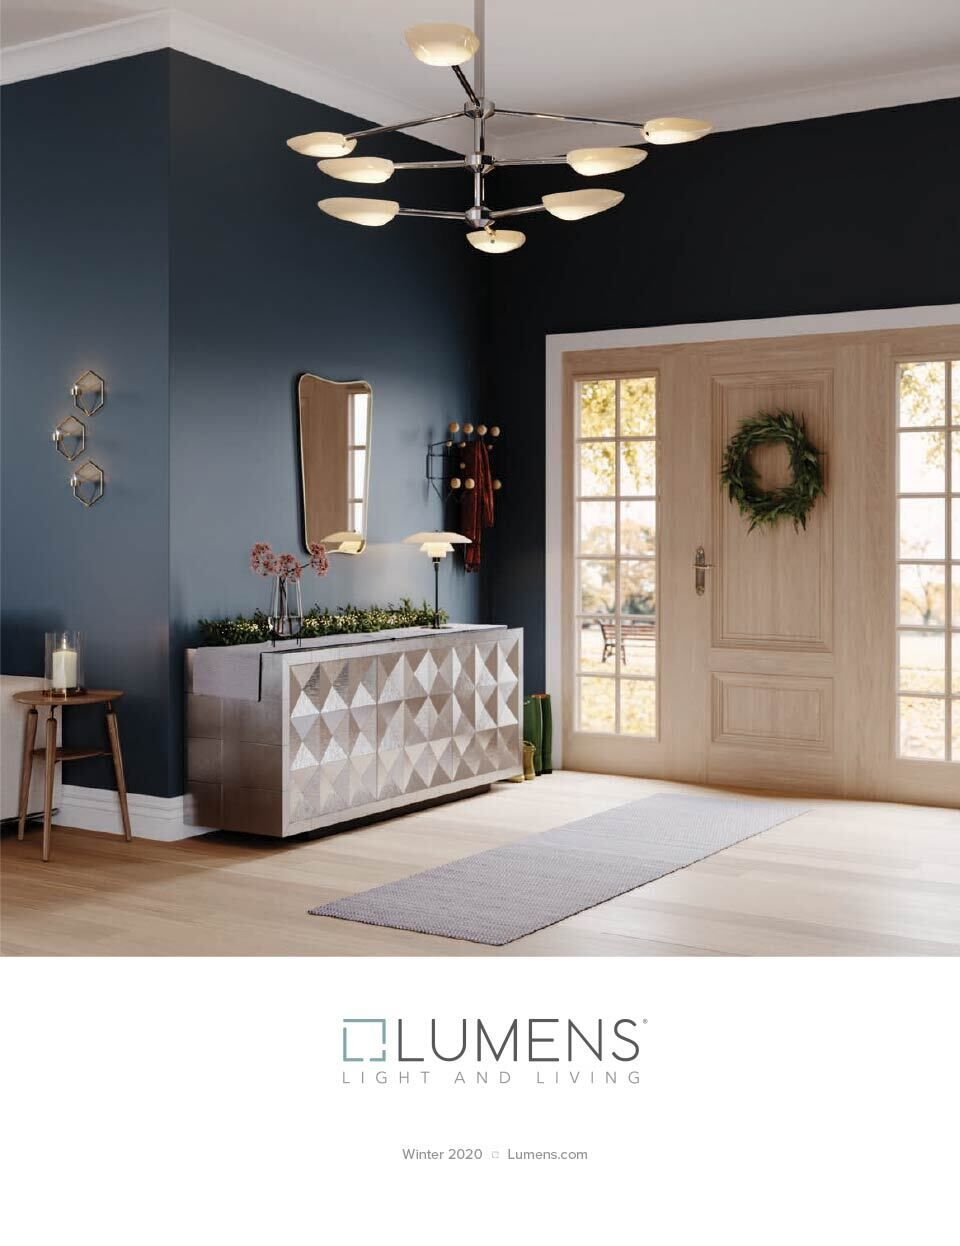 View the Lumens 2020 Winter eCatalog